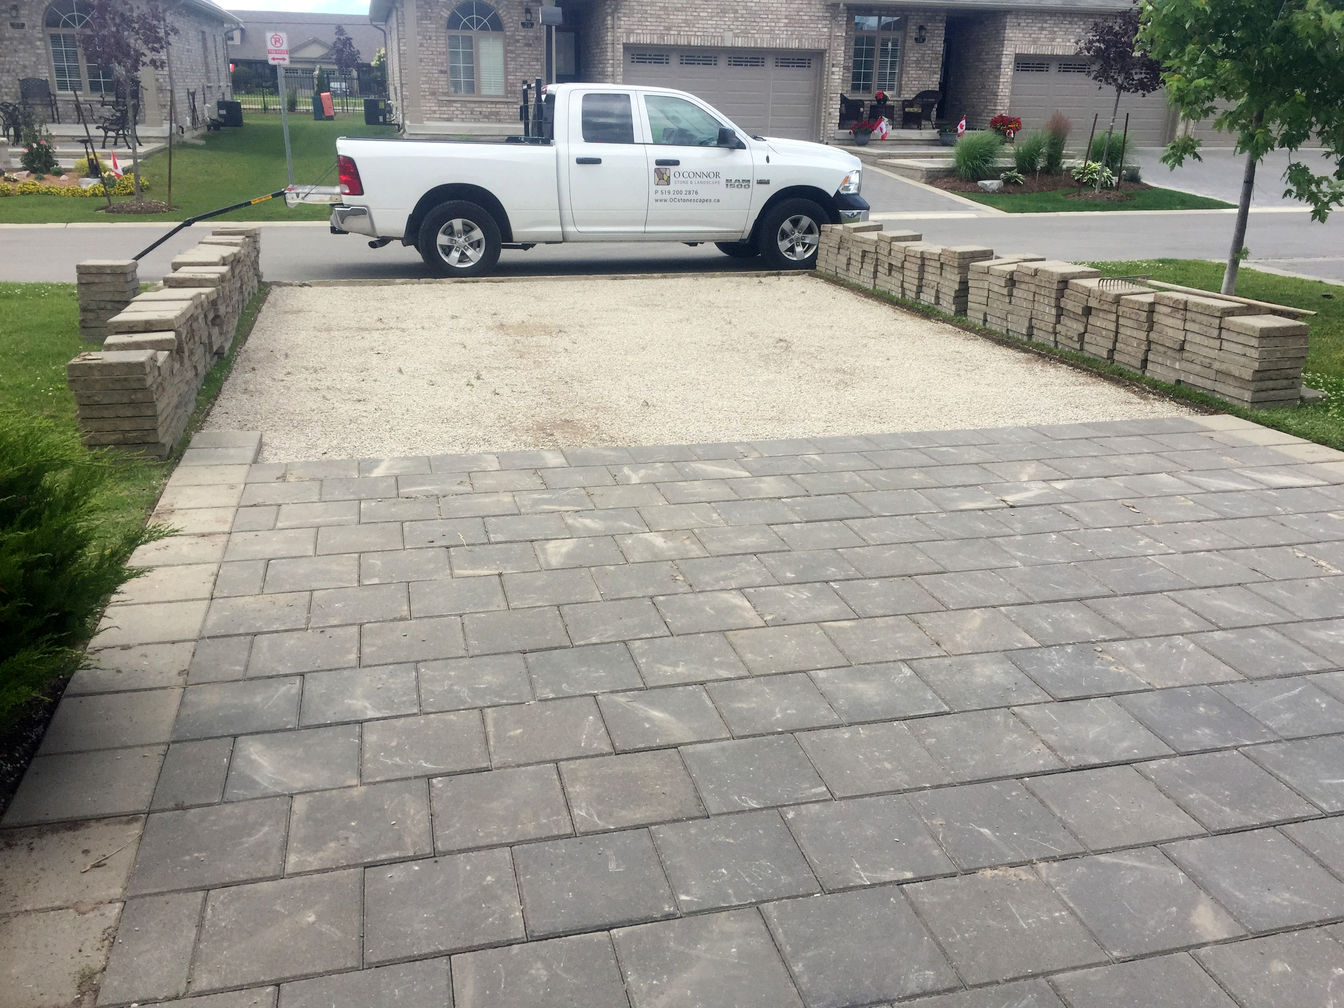 Interlocking Brick Paver Relay / Driveway Paver Relay in London Ontario region, by O'Connor Stone & Landscape. A landscape / hardscape contractor.